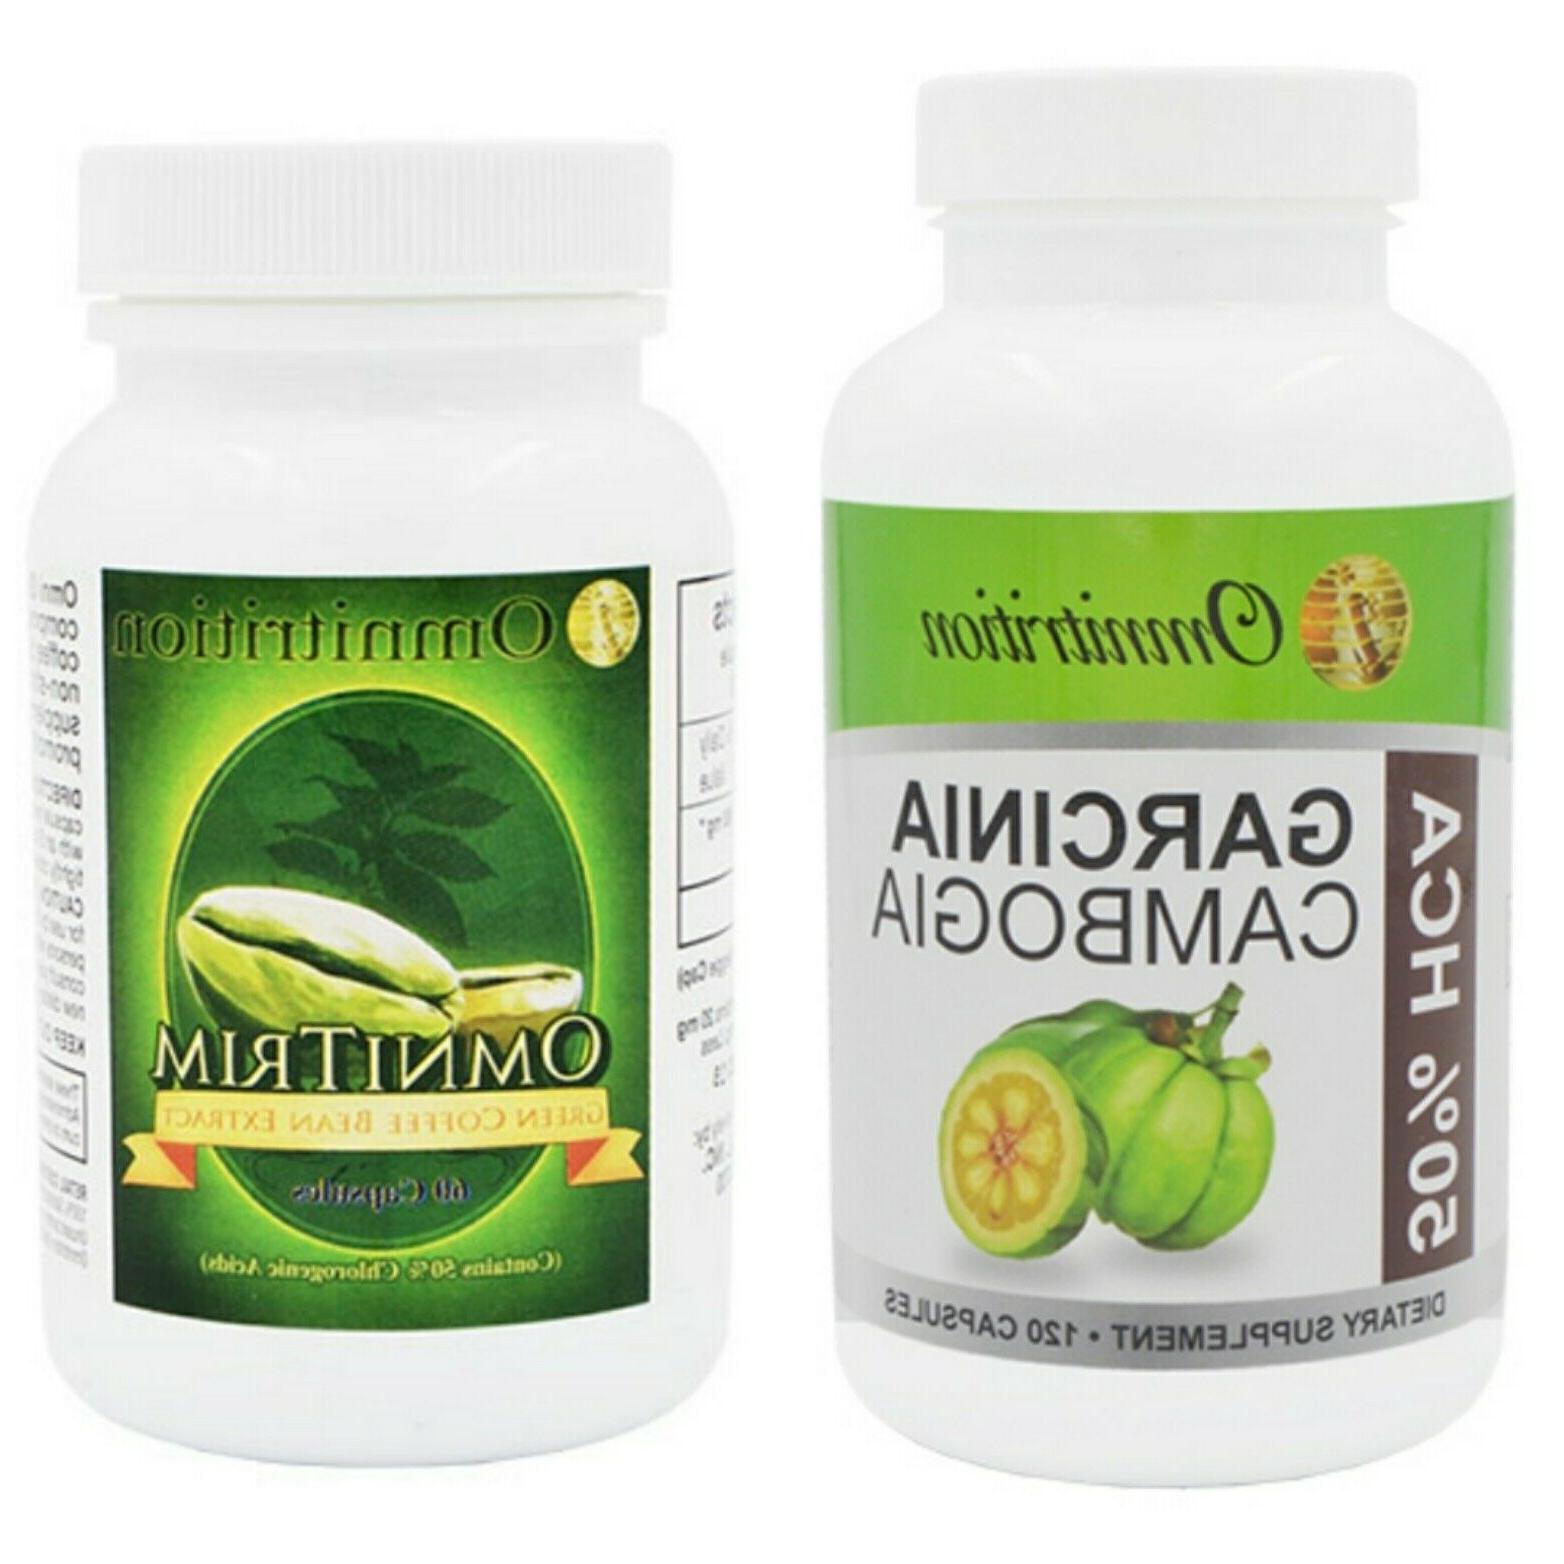 garcinia cambogia dietary supplement and green coffee